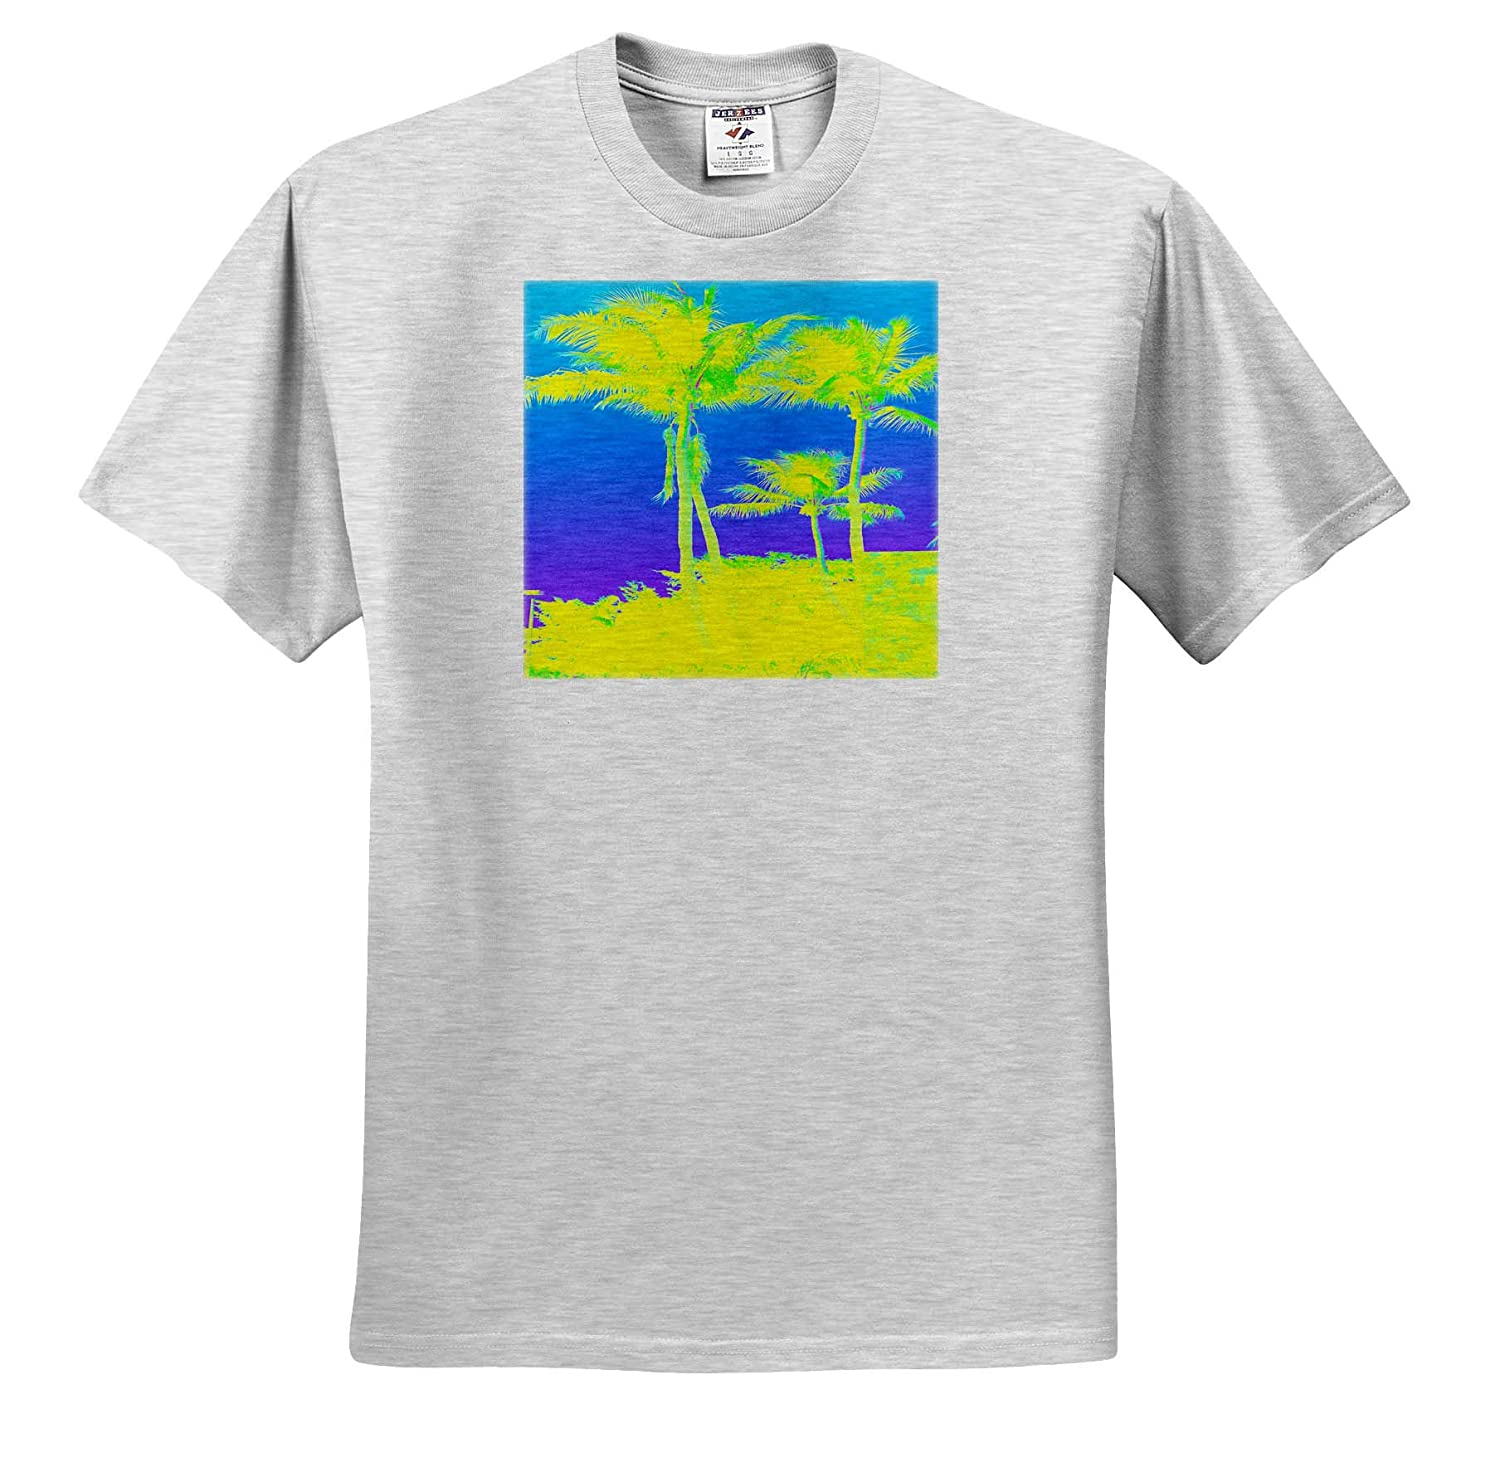 T-Shirts Image of Two Neon Yellow Palms On Bright Blue Sky Floral and Tree Abstracts 3dRose Lens Art by Florene